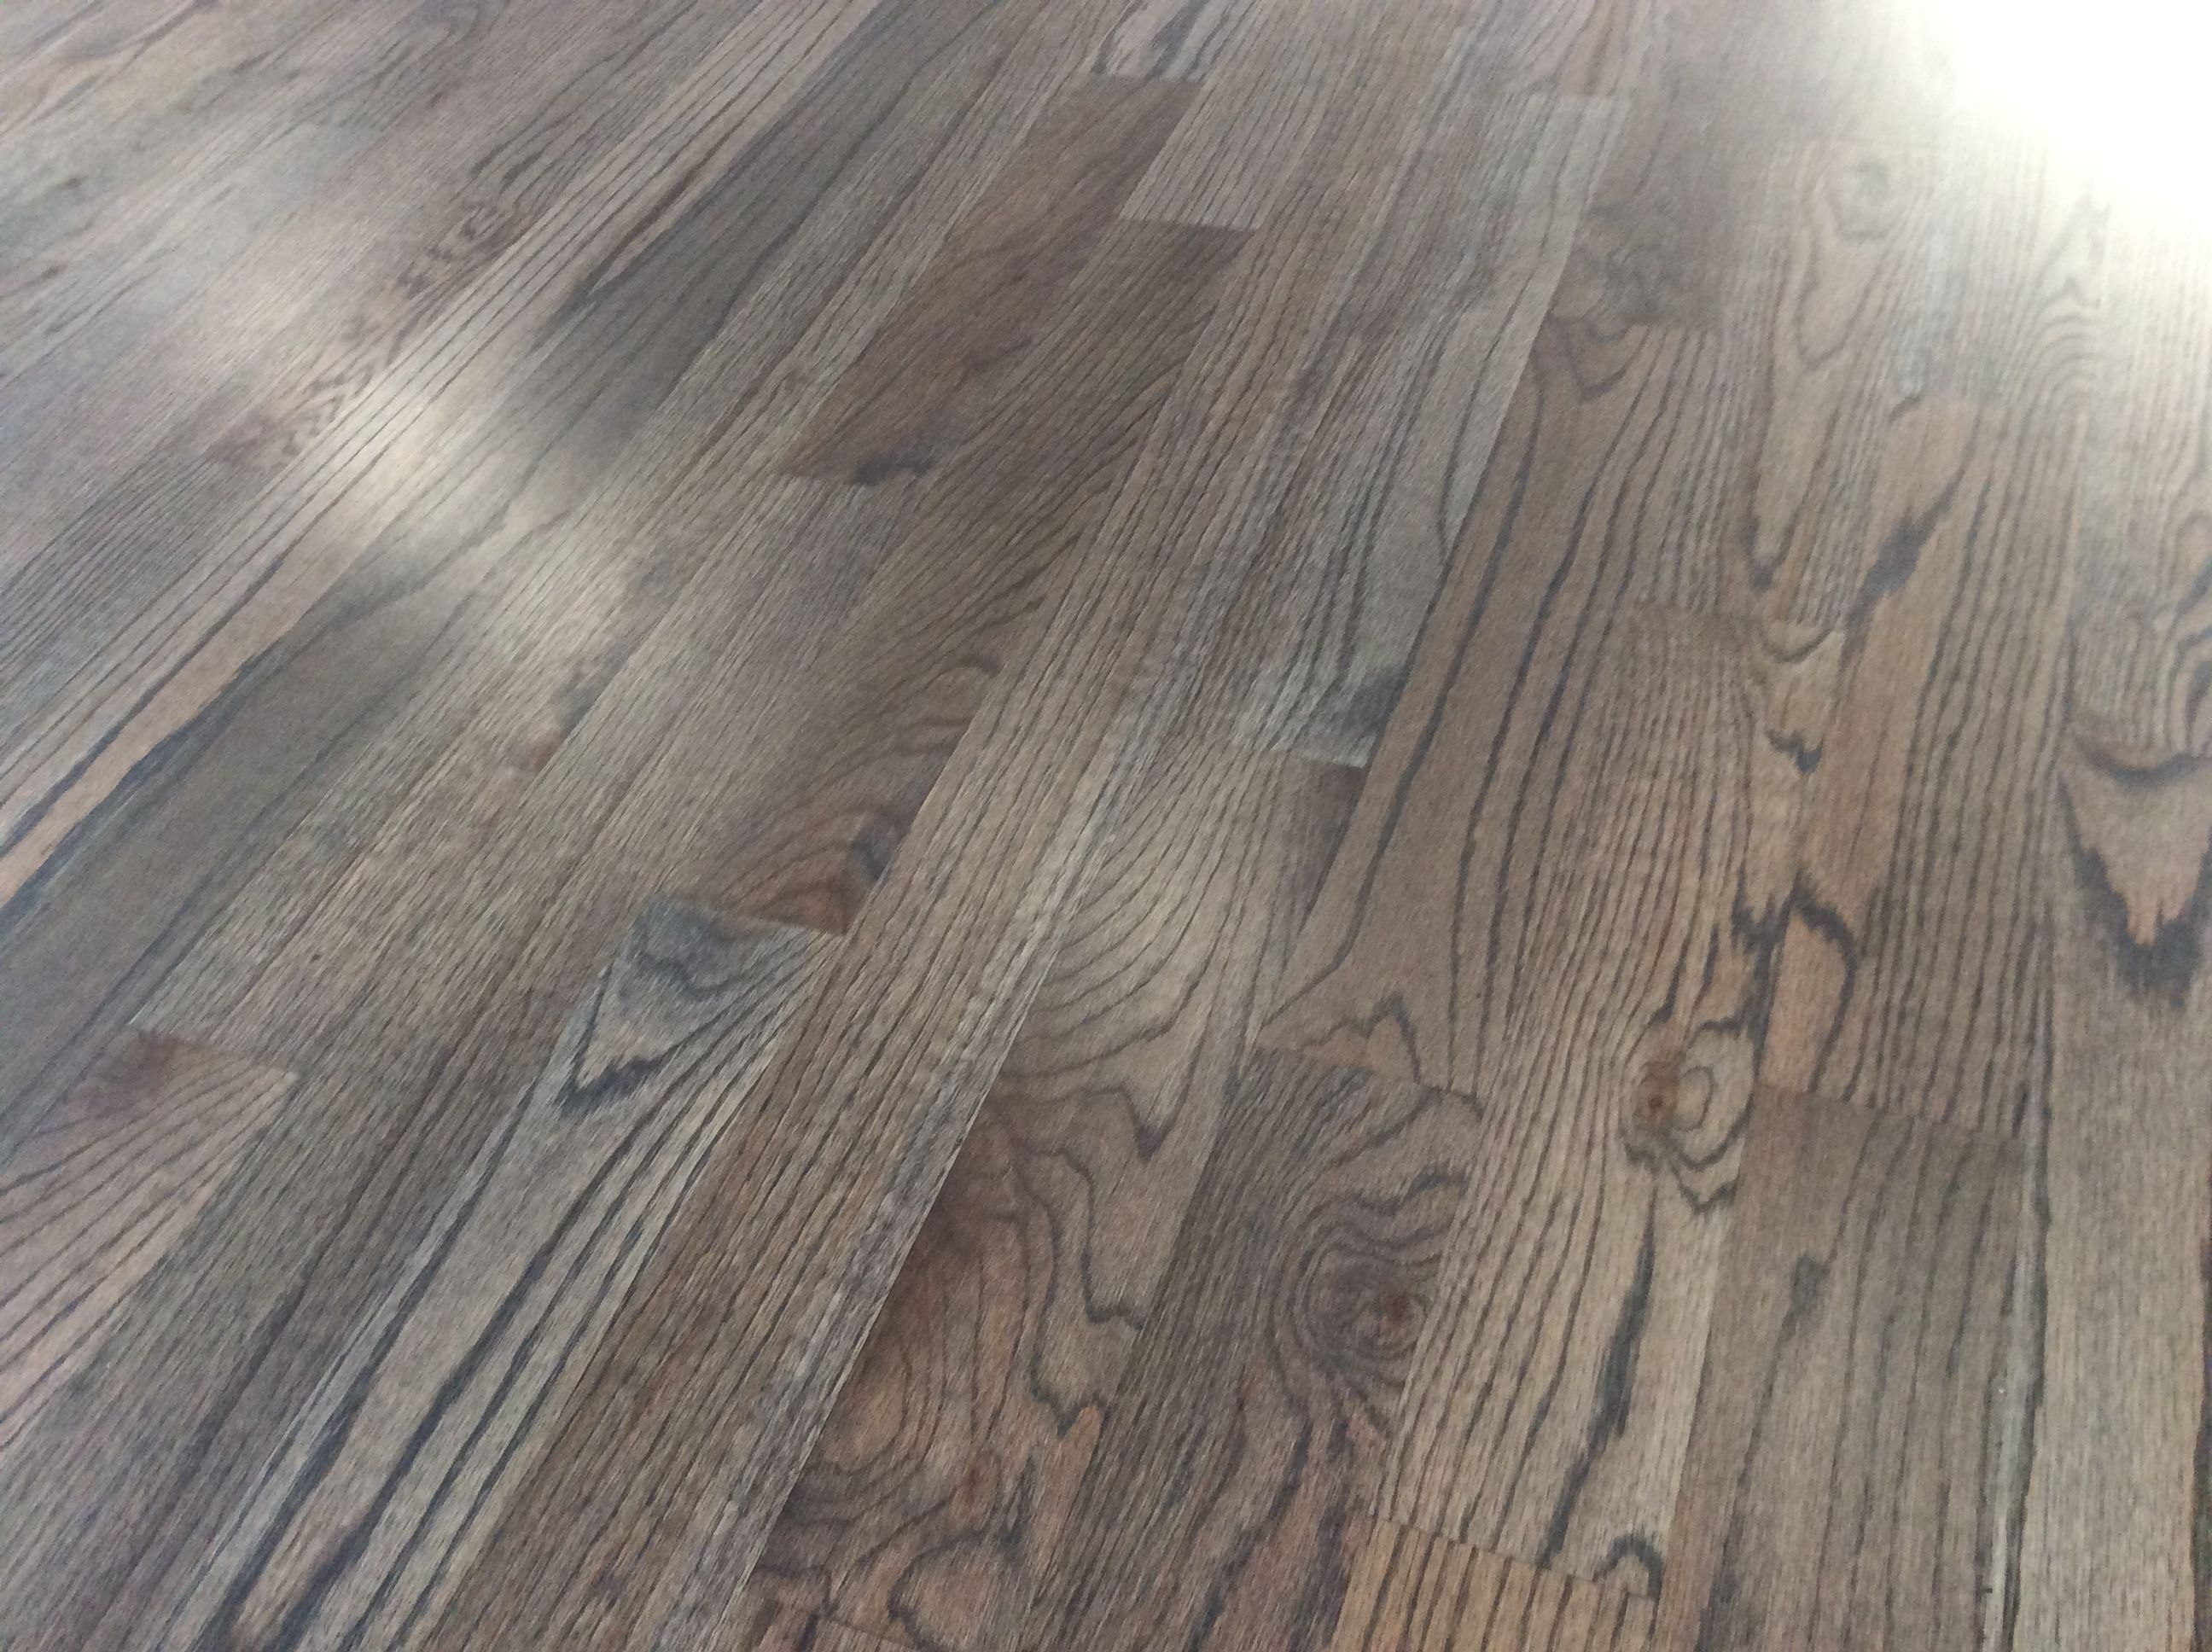 23 Best Red Oak Floor Stain Colors  Decoratoo. Interior Design Of Living Rooms Photos. Wallpaper For Living Room Wall. Living Room Magazine. Living Room Furniture Dublin. Mirrors Living Room Wall. Classic Style Living Room Ideas. Light Living Room Colors. The Great Living Room Escape